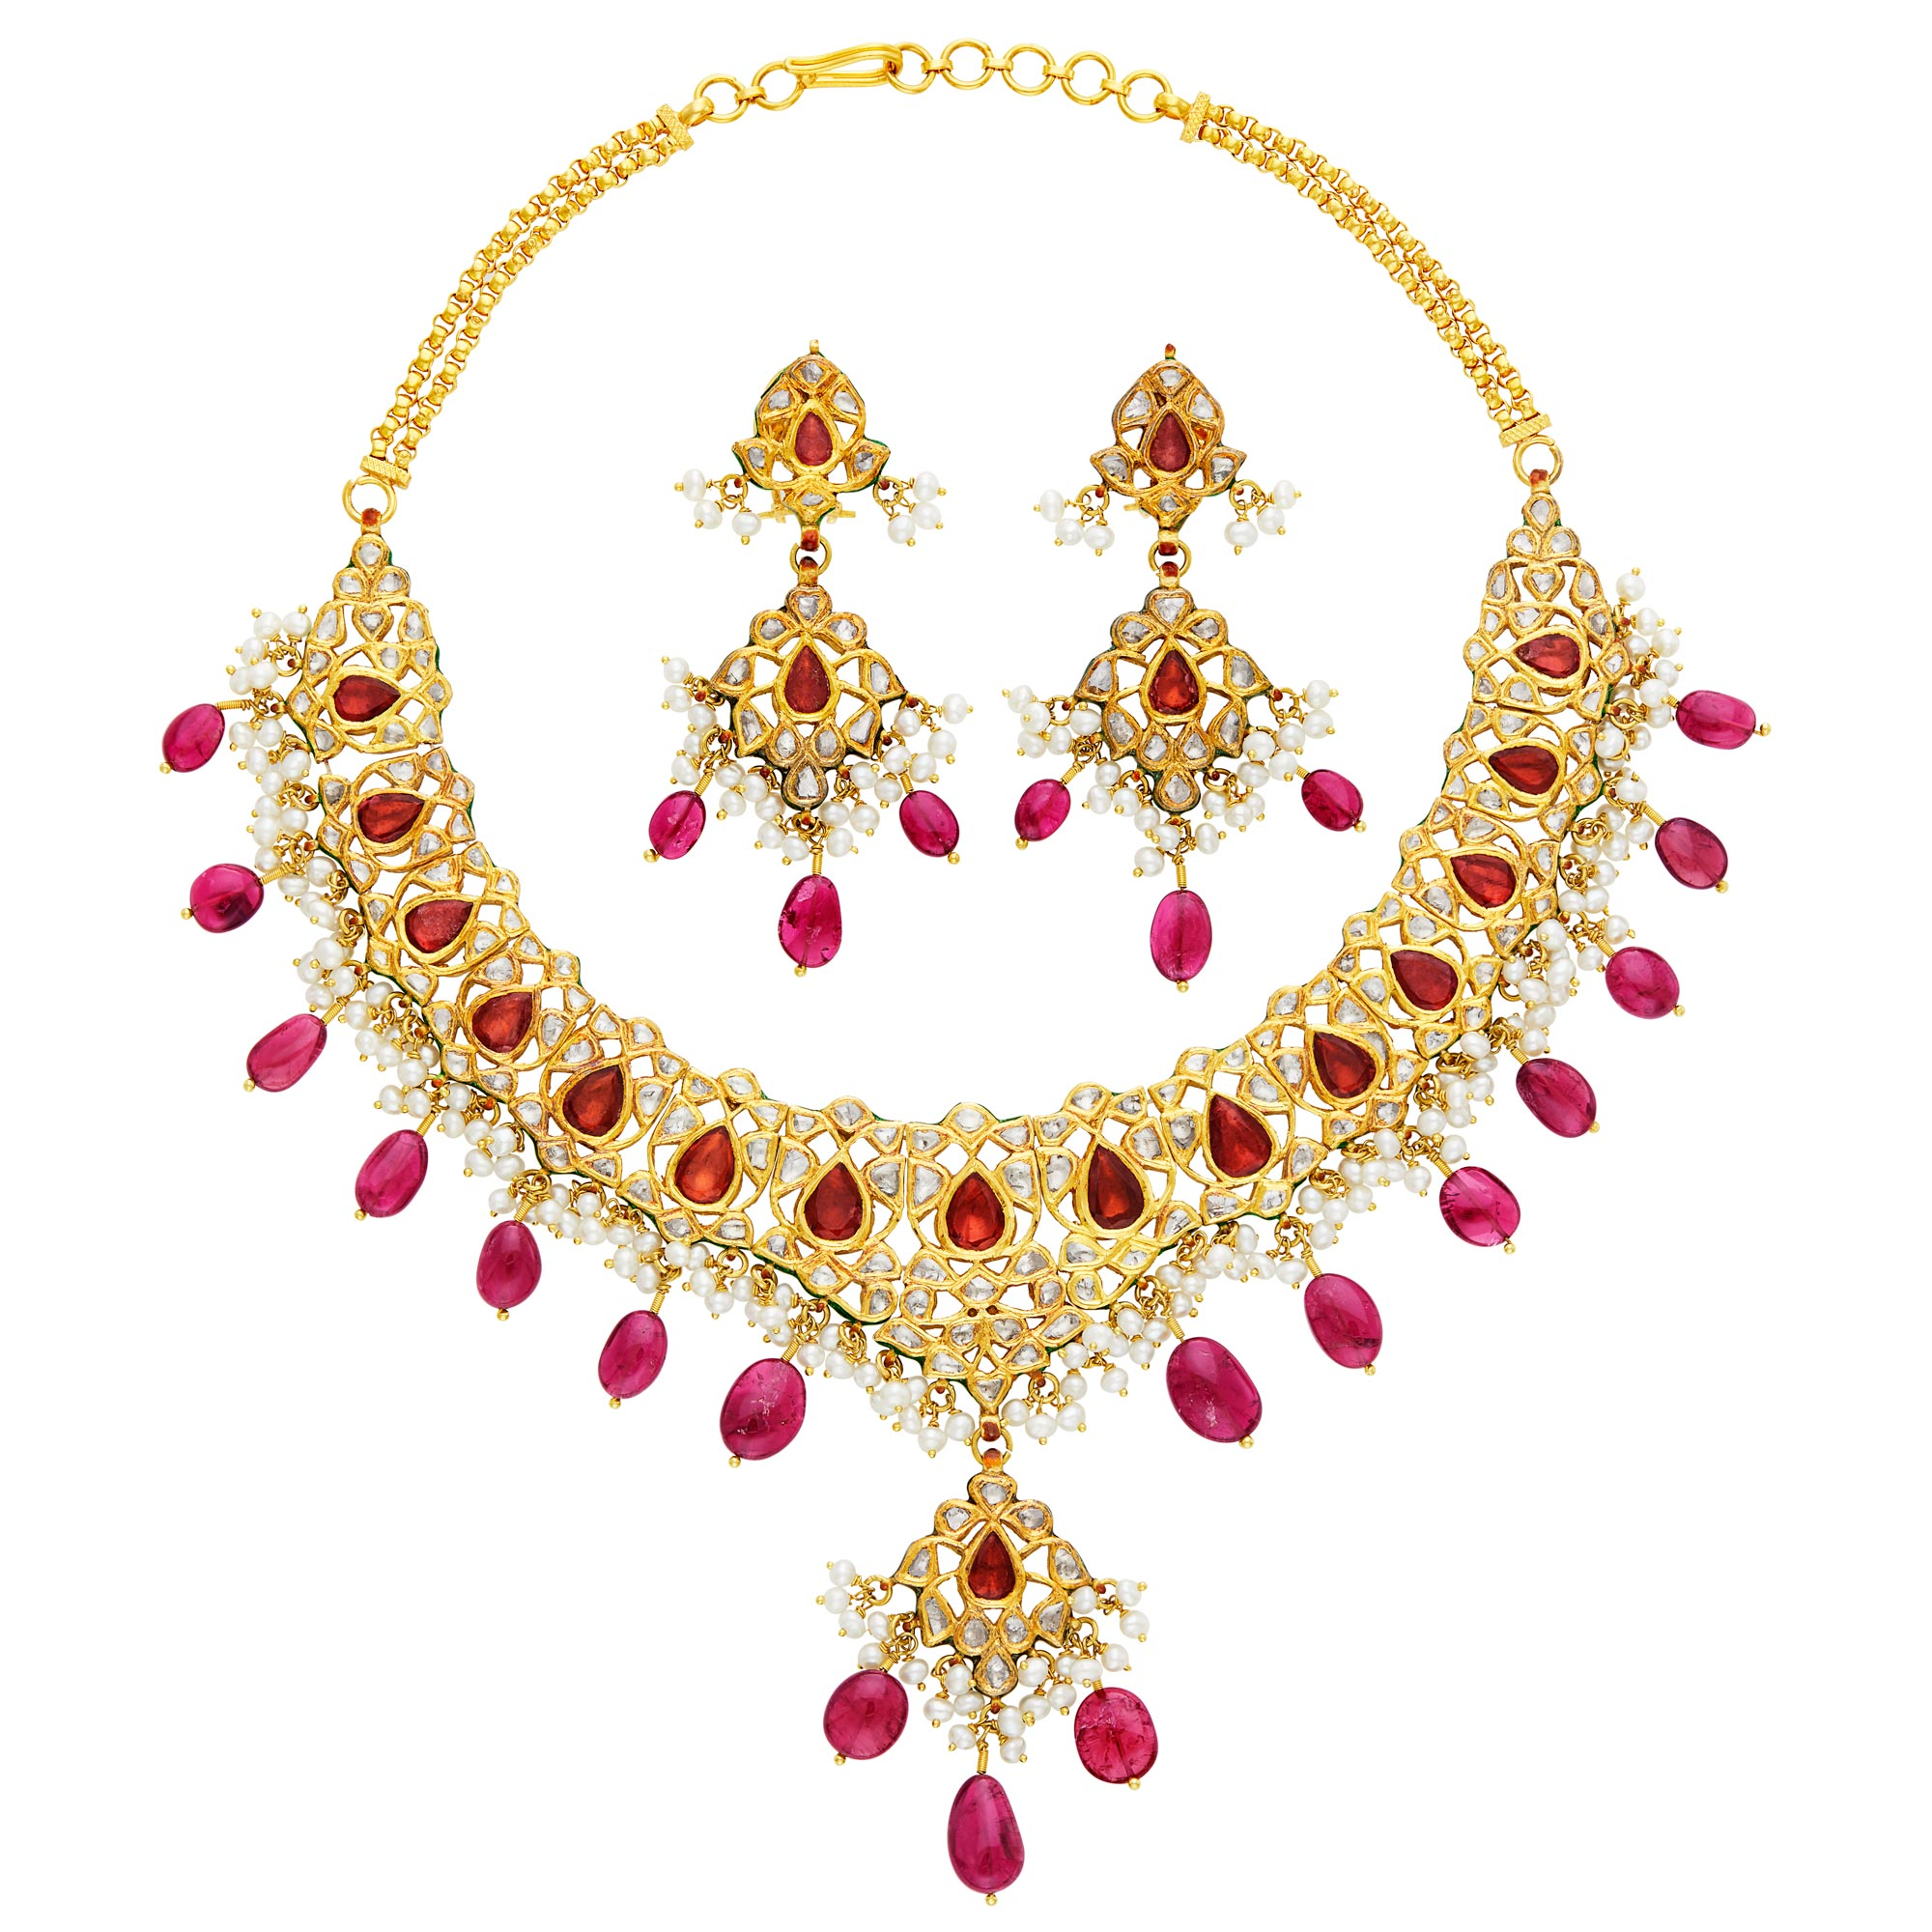 Lot image - Indian Gold, Pink Tourmaline, Diamond, Freshwater Pearl and Jaipur Enamel Fringe Necklace and Pair of Pendant-Earrings